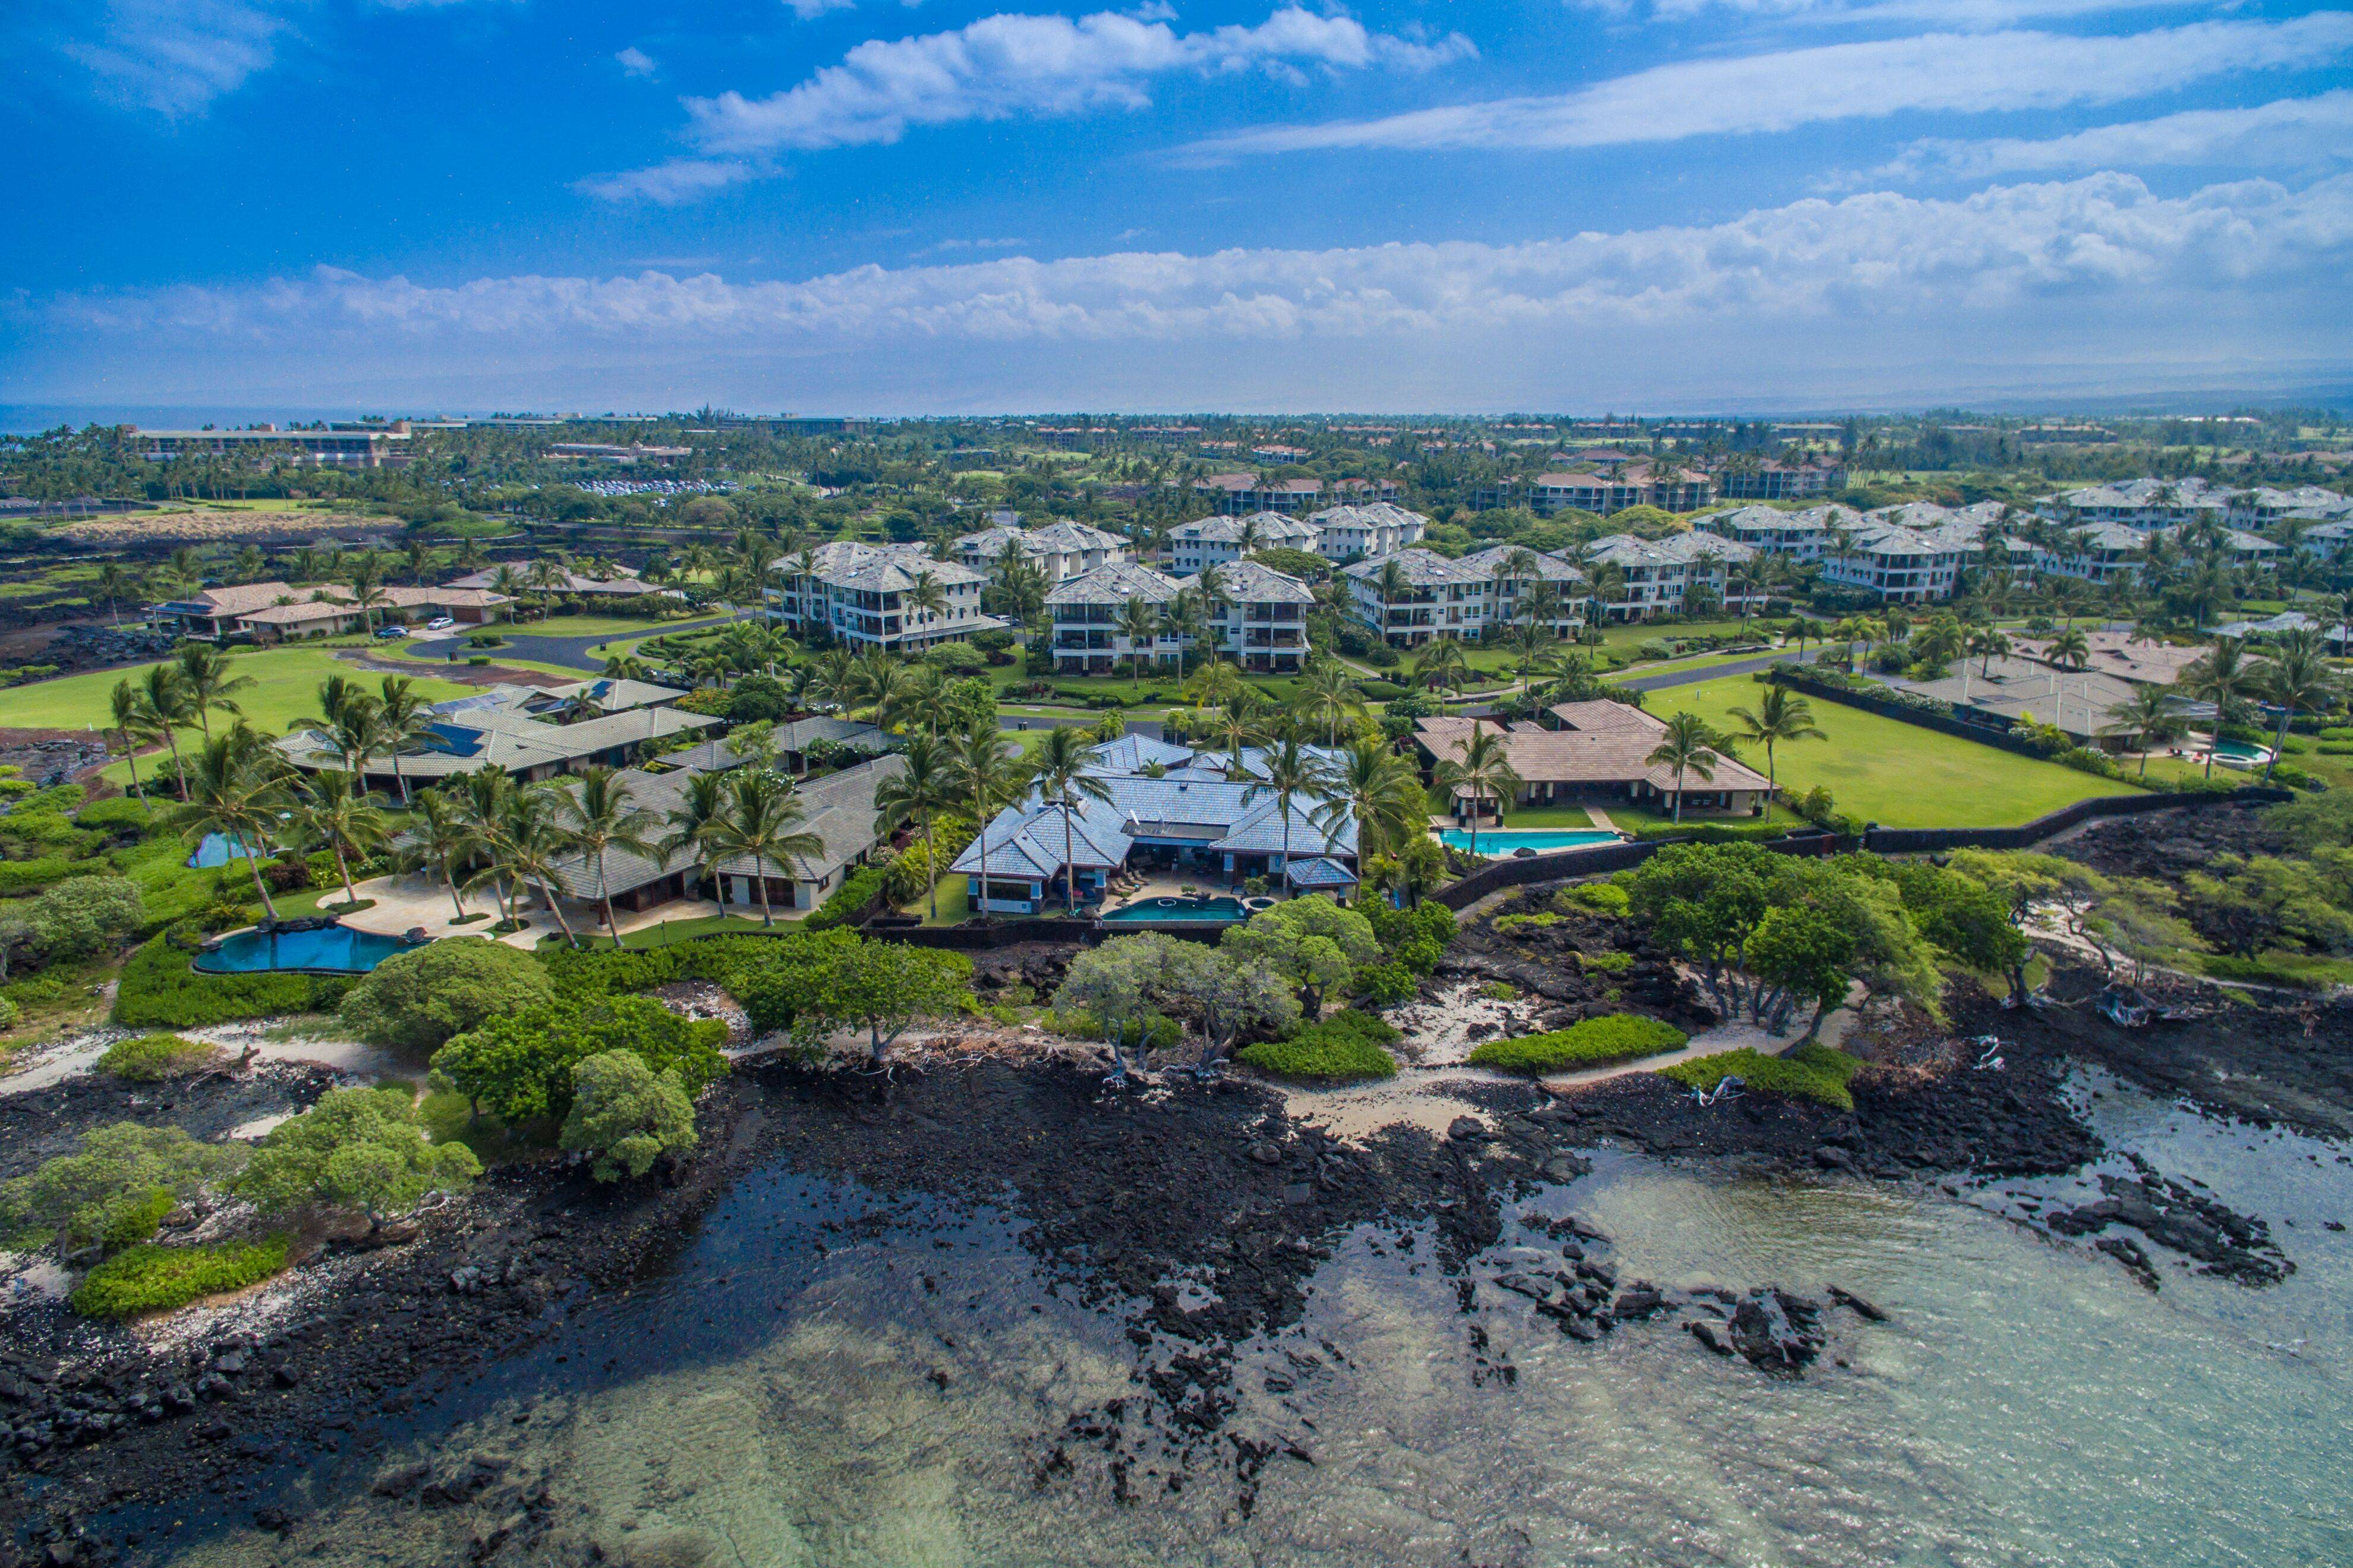 Overhead view of Waikoloa Beach Resort